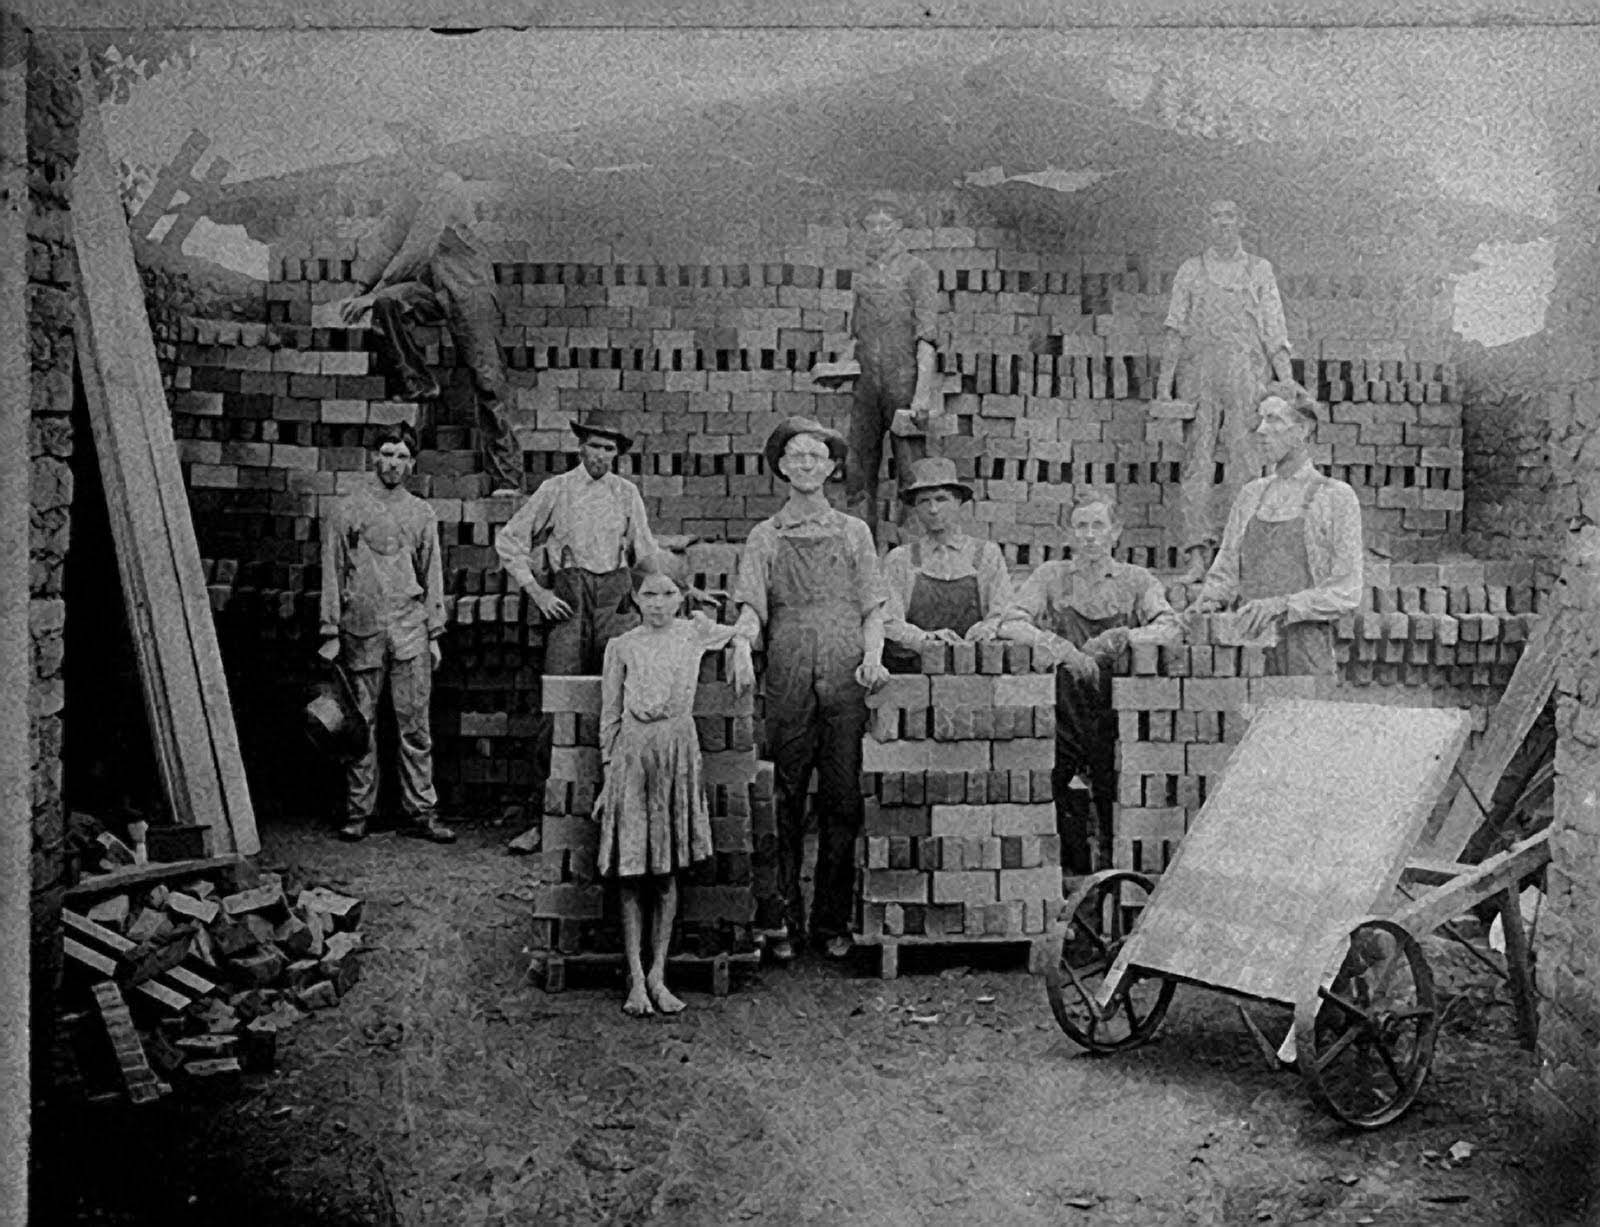 BRICKMAKING in the USA: A BRIEF HISTORY